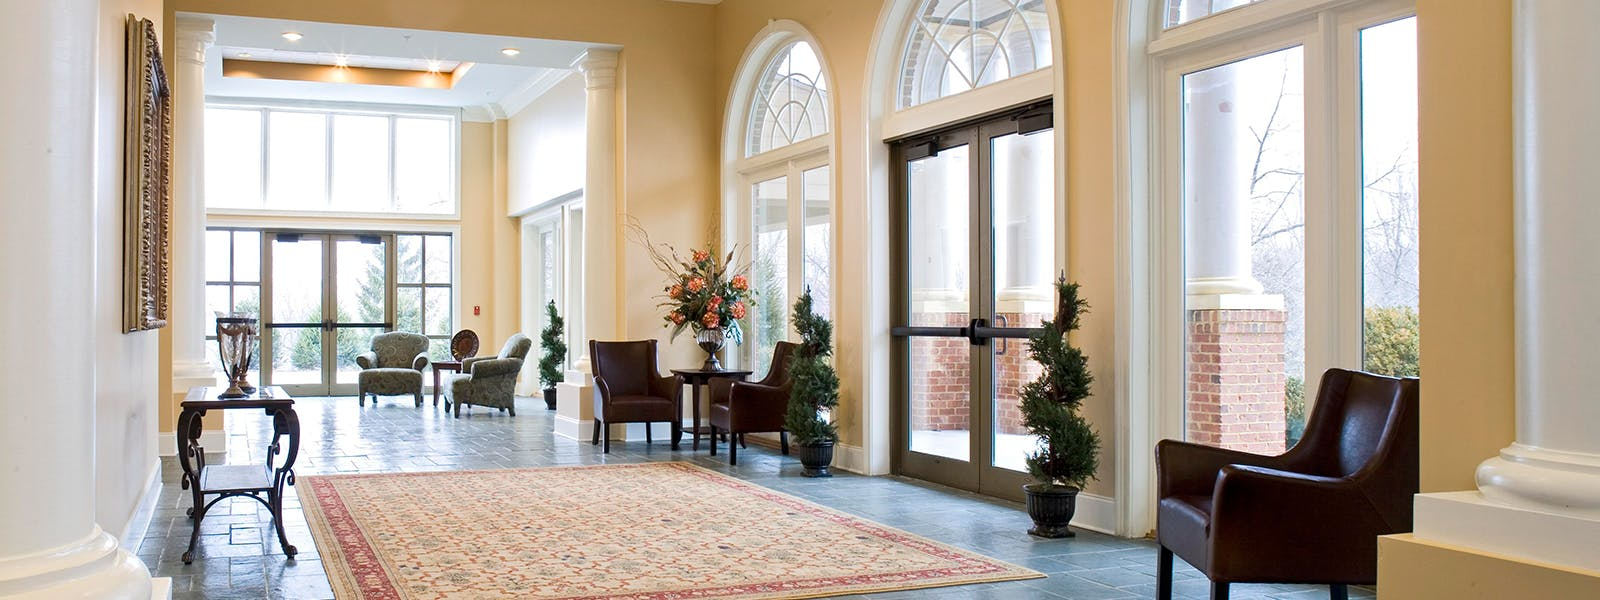 Bright Foyer at Glade Springs